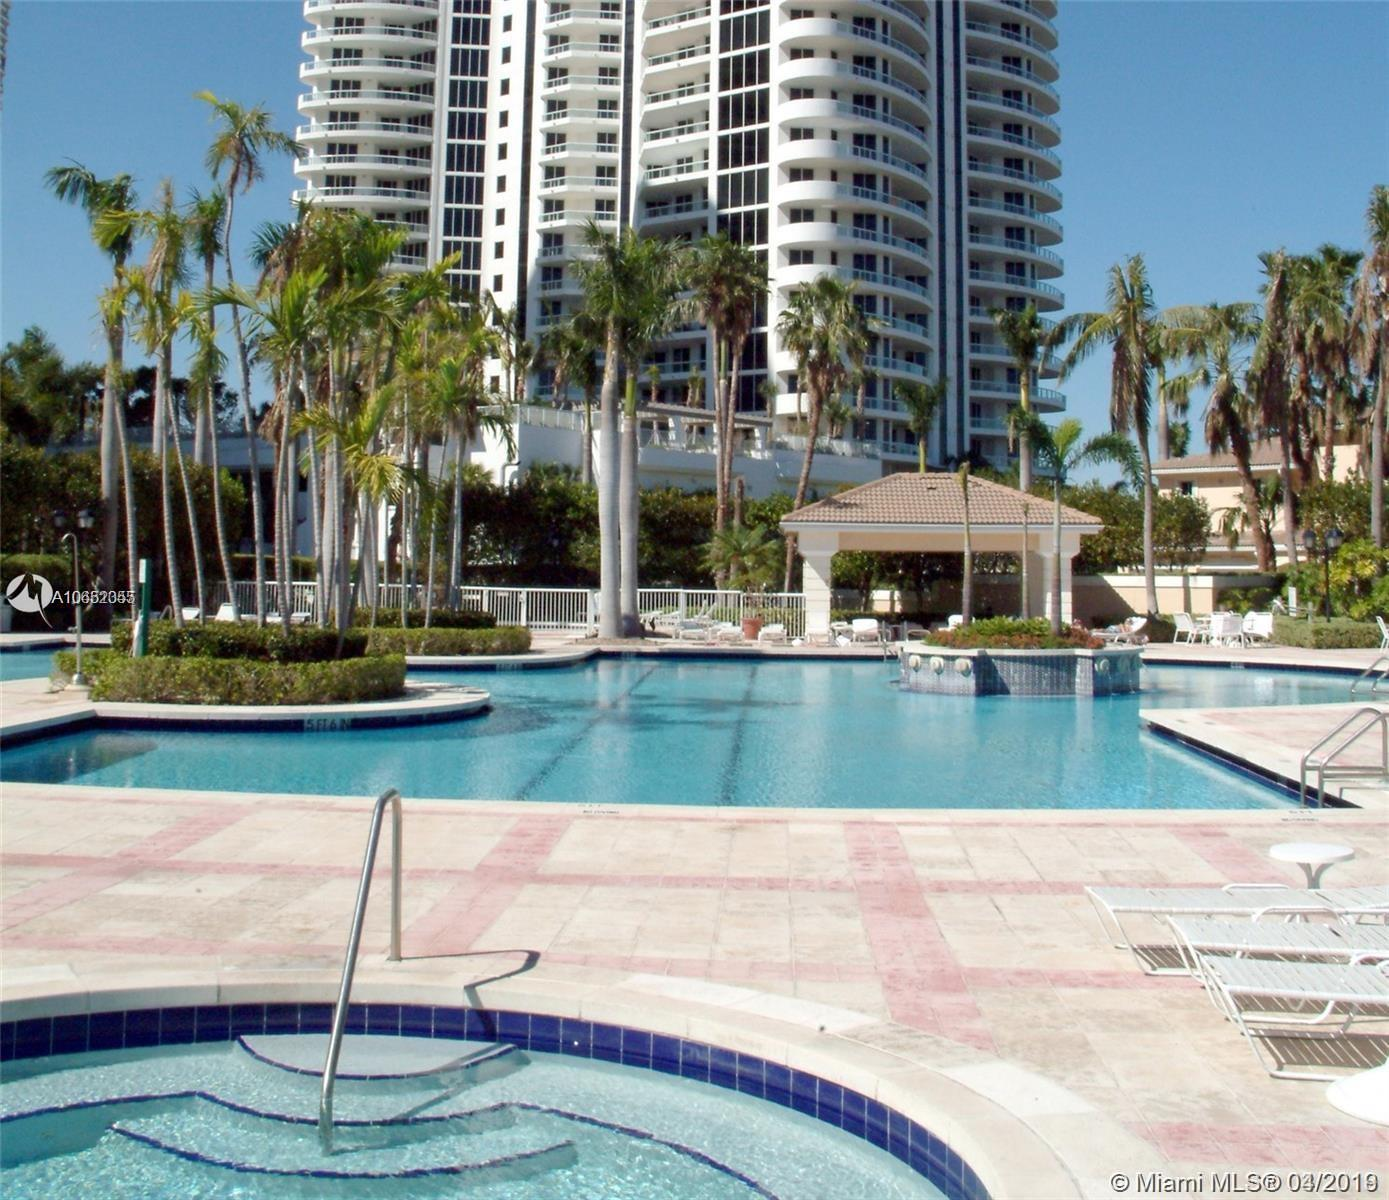 image #1 of property, Atlantic I At The Point C, Unit 1102